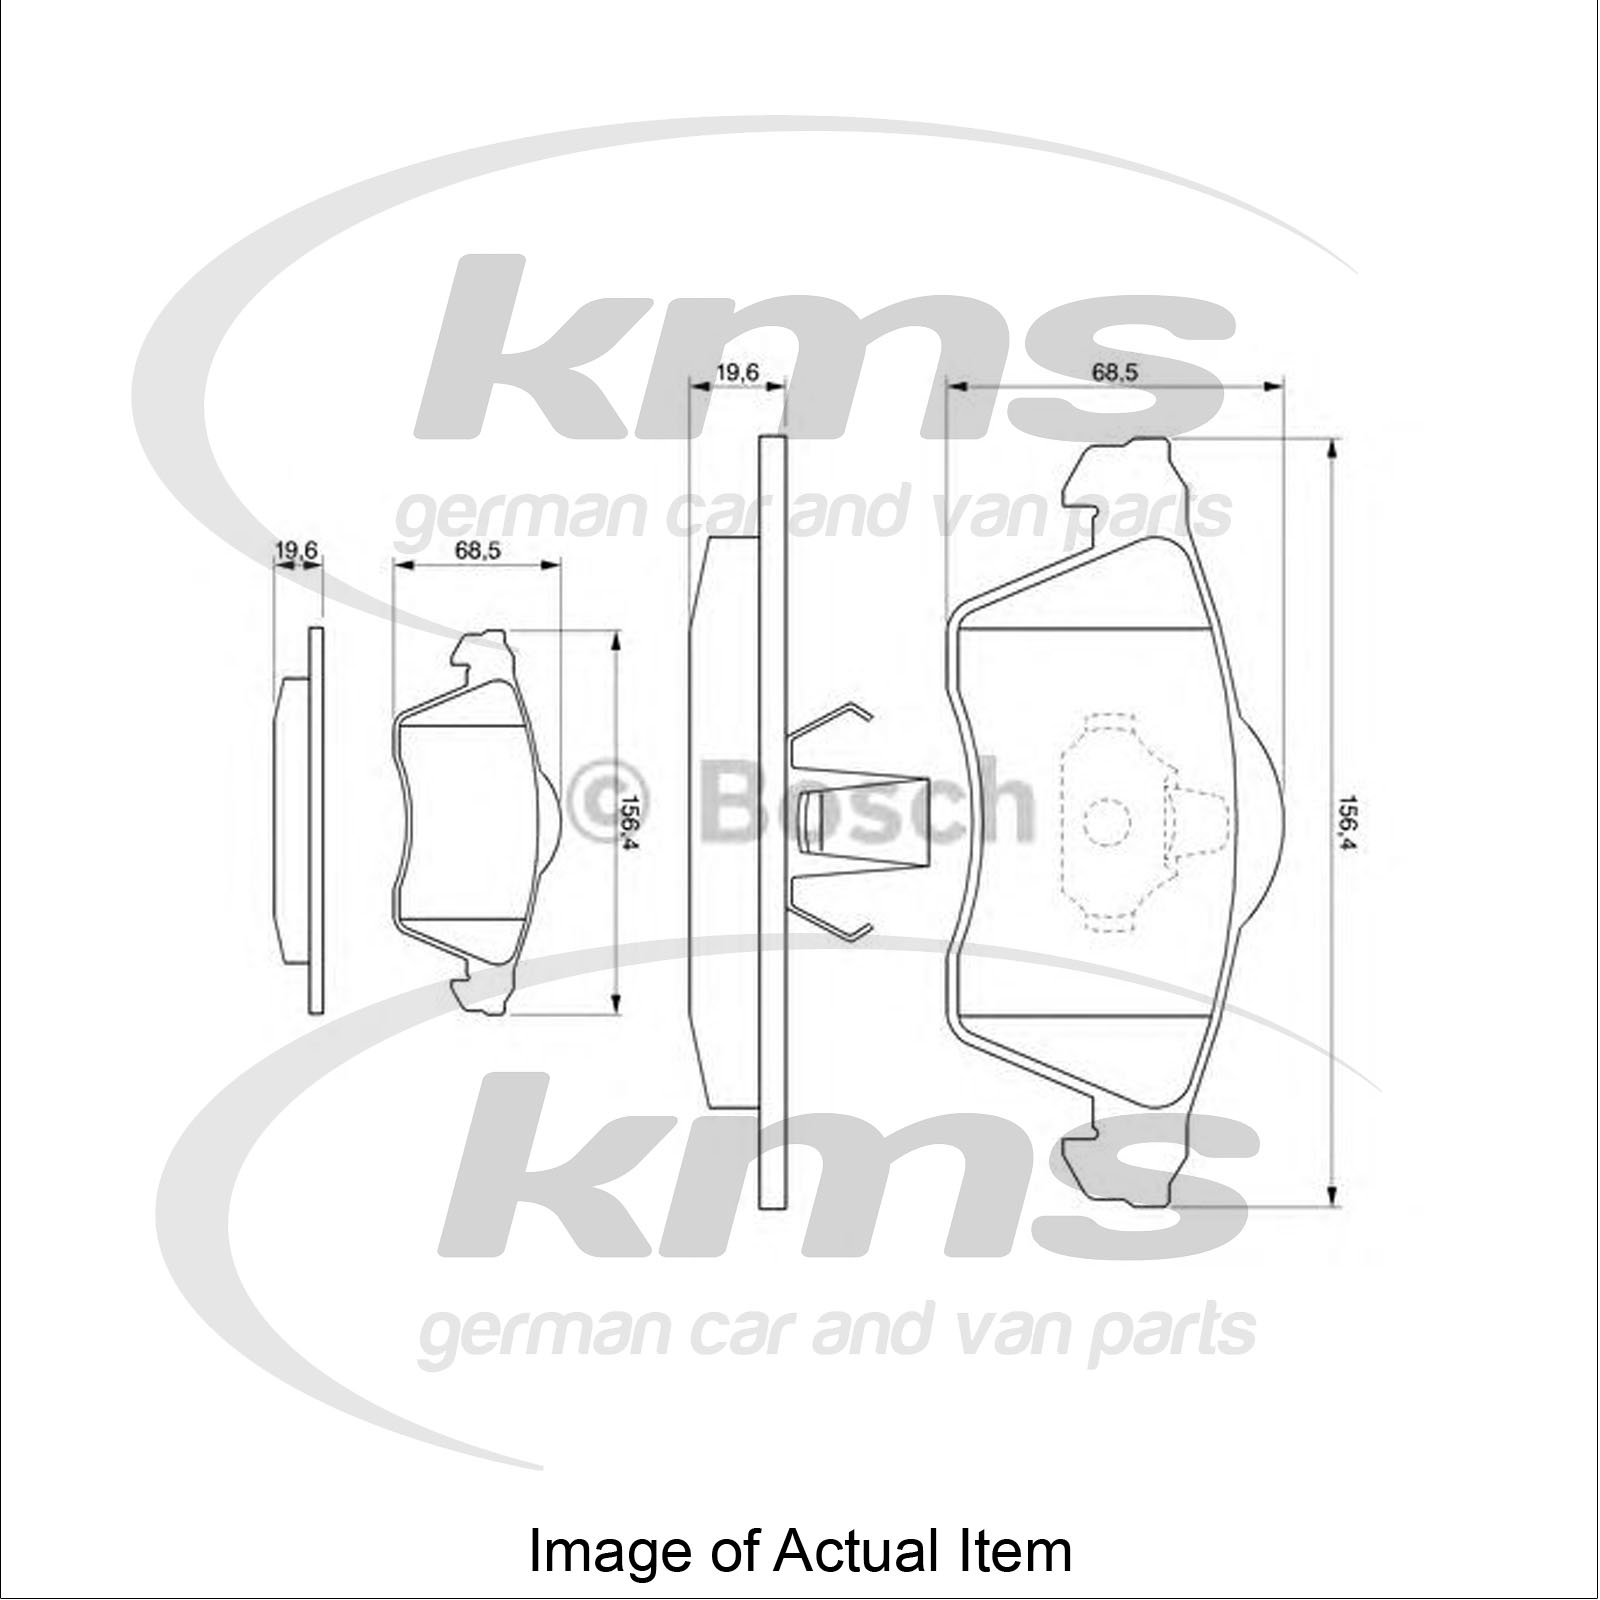 201177489769 on vw caravelle front brake lines and hoses on vw caravelle front volkswagen tiguan 2009 engine diagram